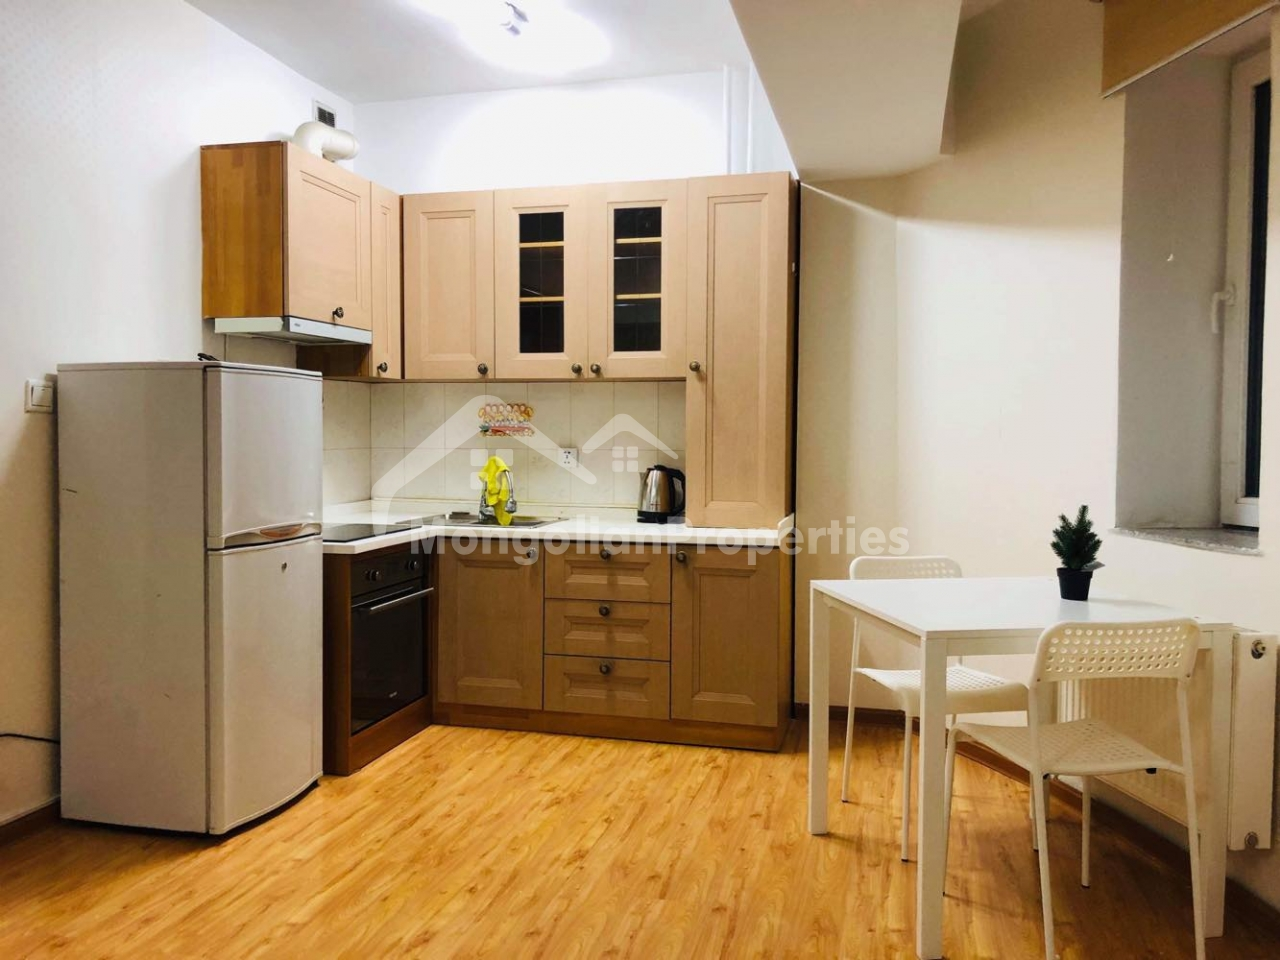 City center! cozy 1 bedroom apartment is for rent near Japanese Embassy